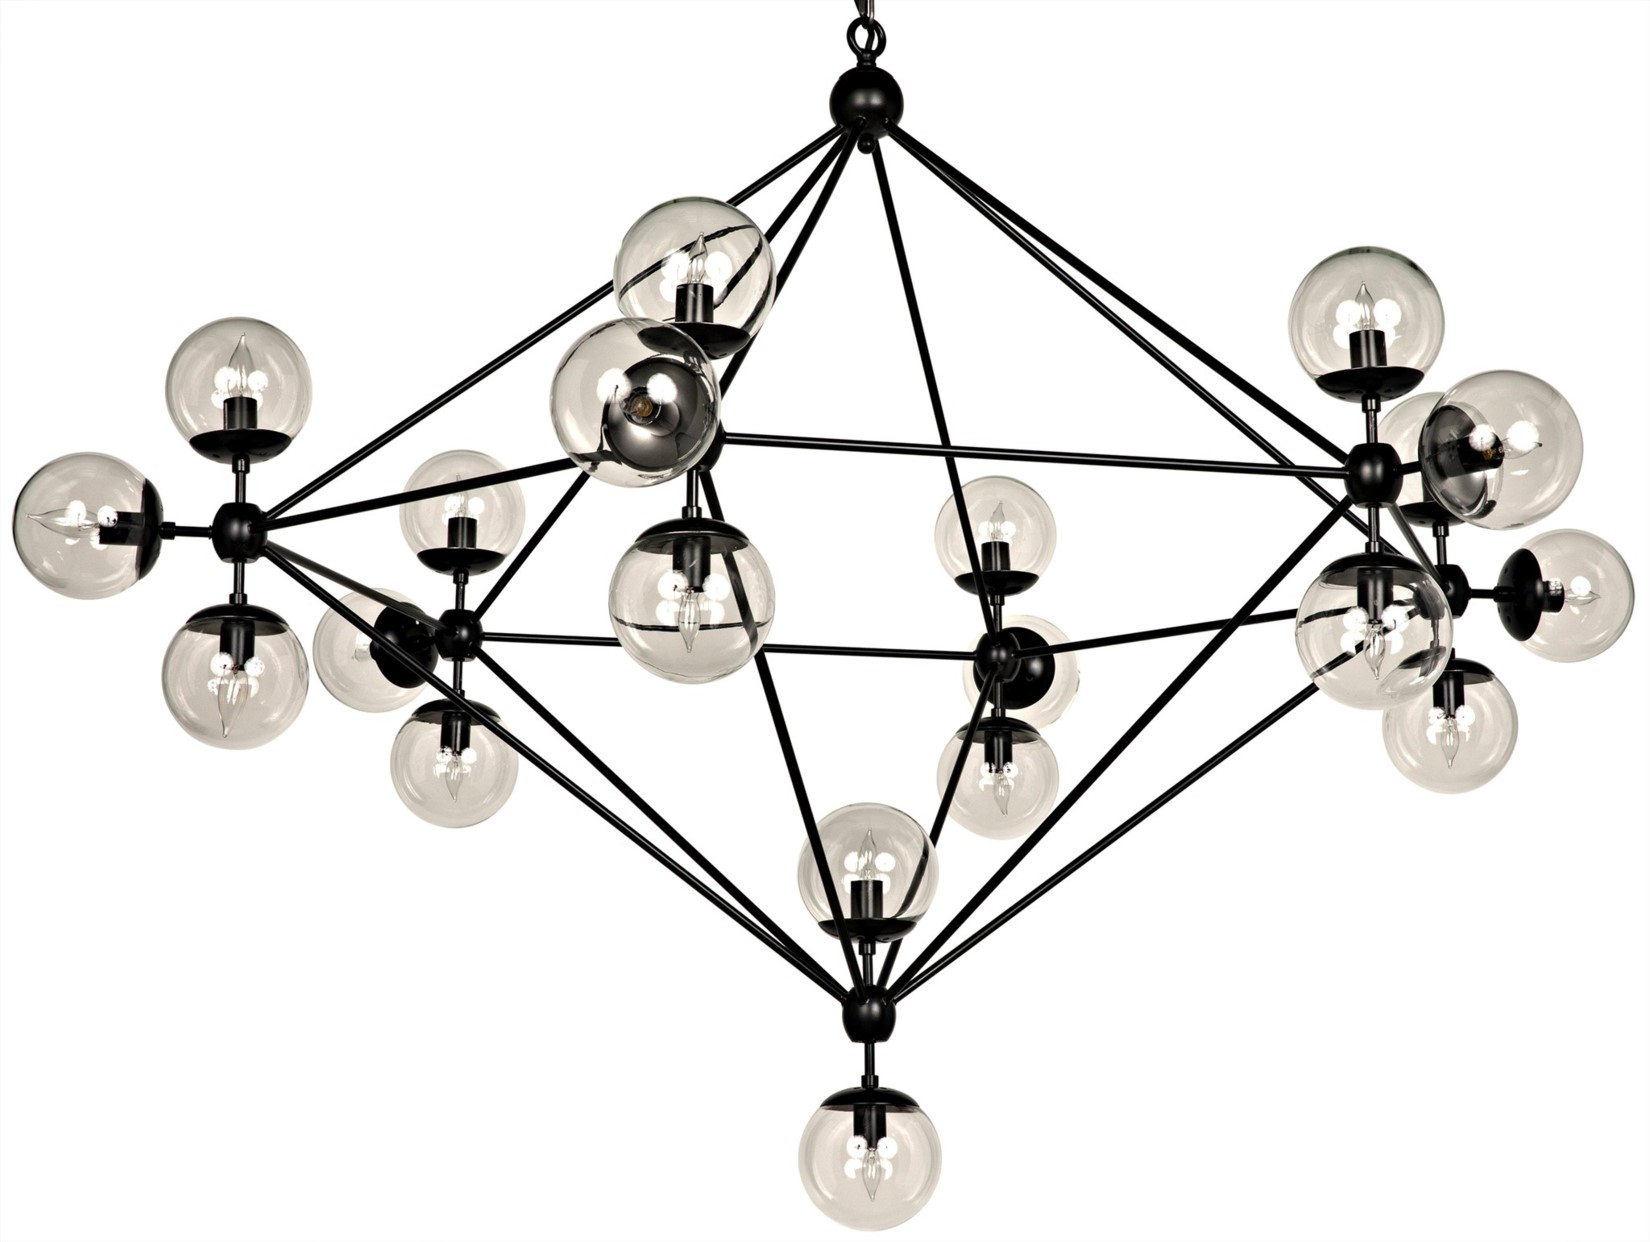 Chandeliers At Lowes Chandelier Images Of Chandeliers